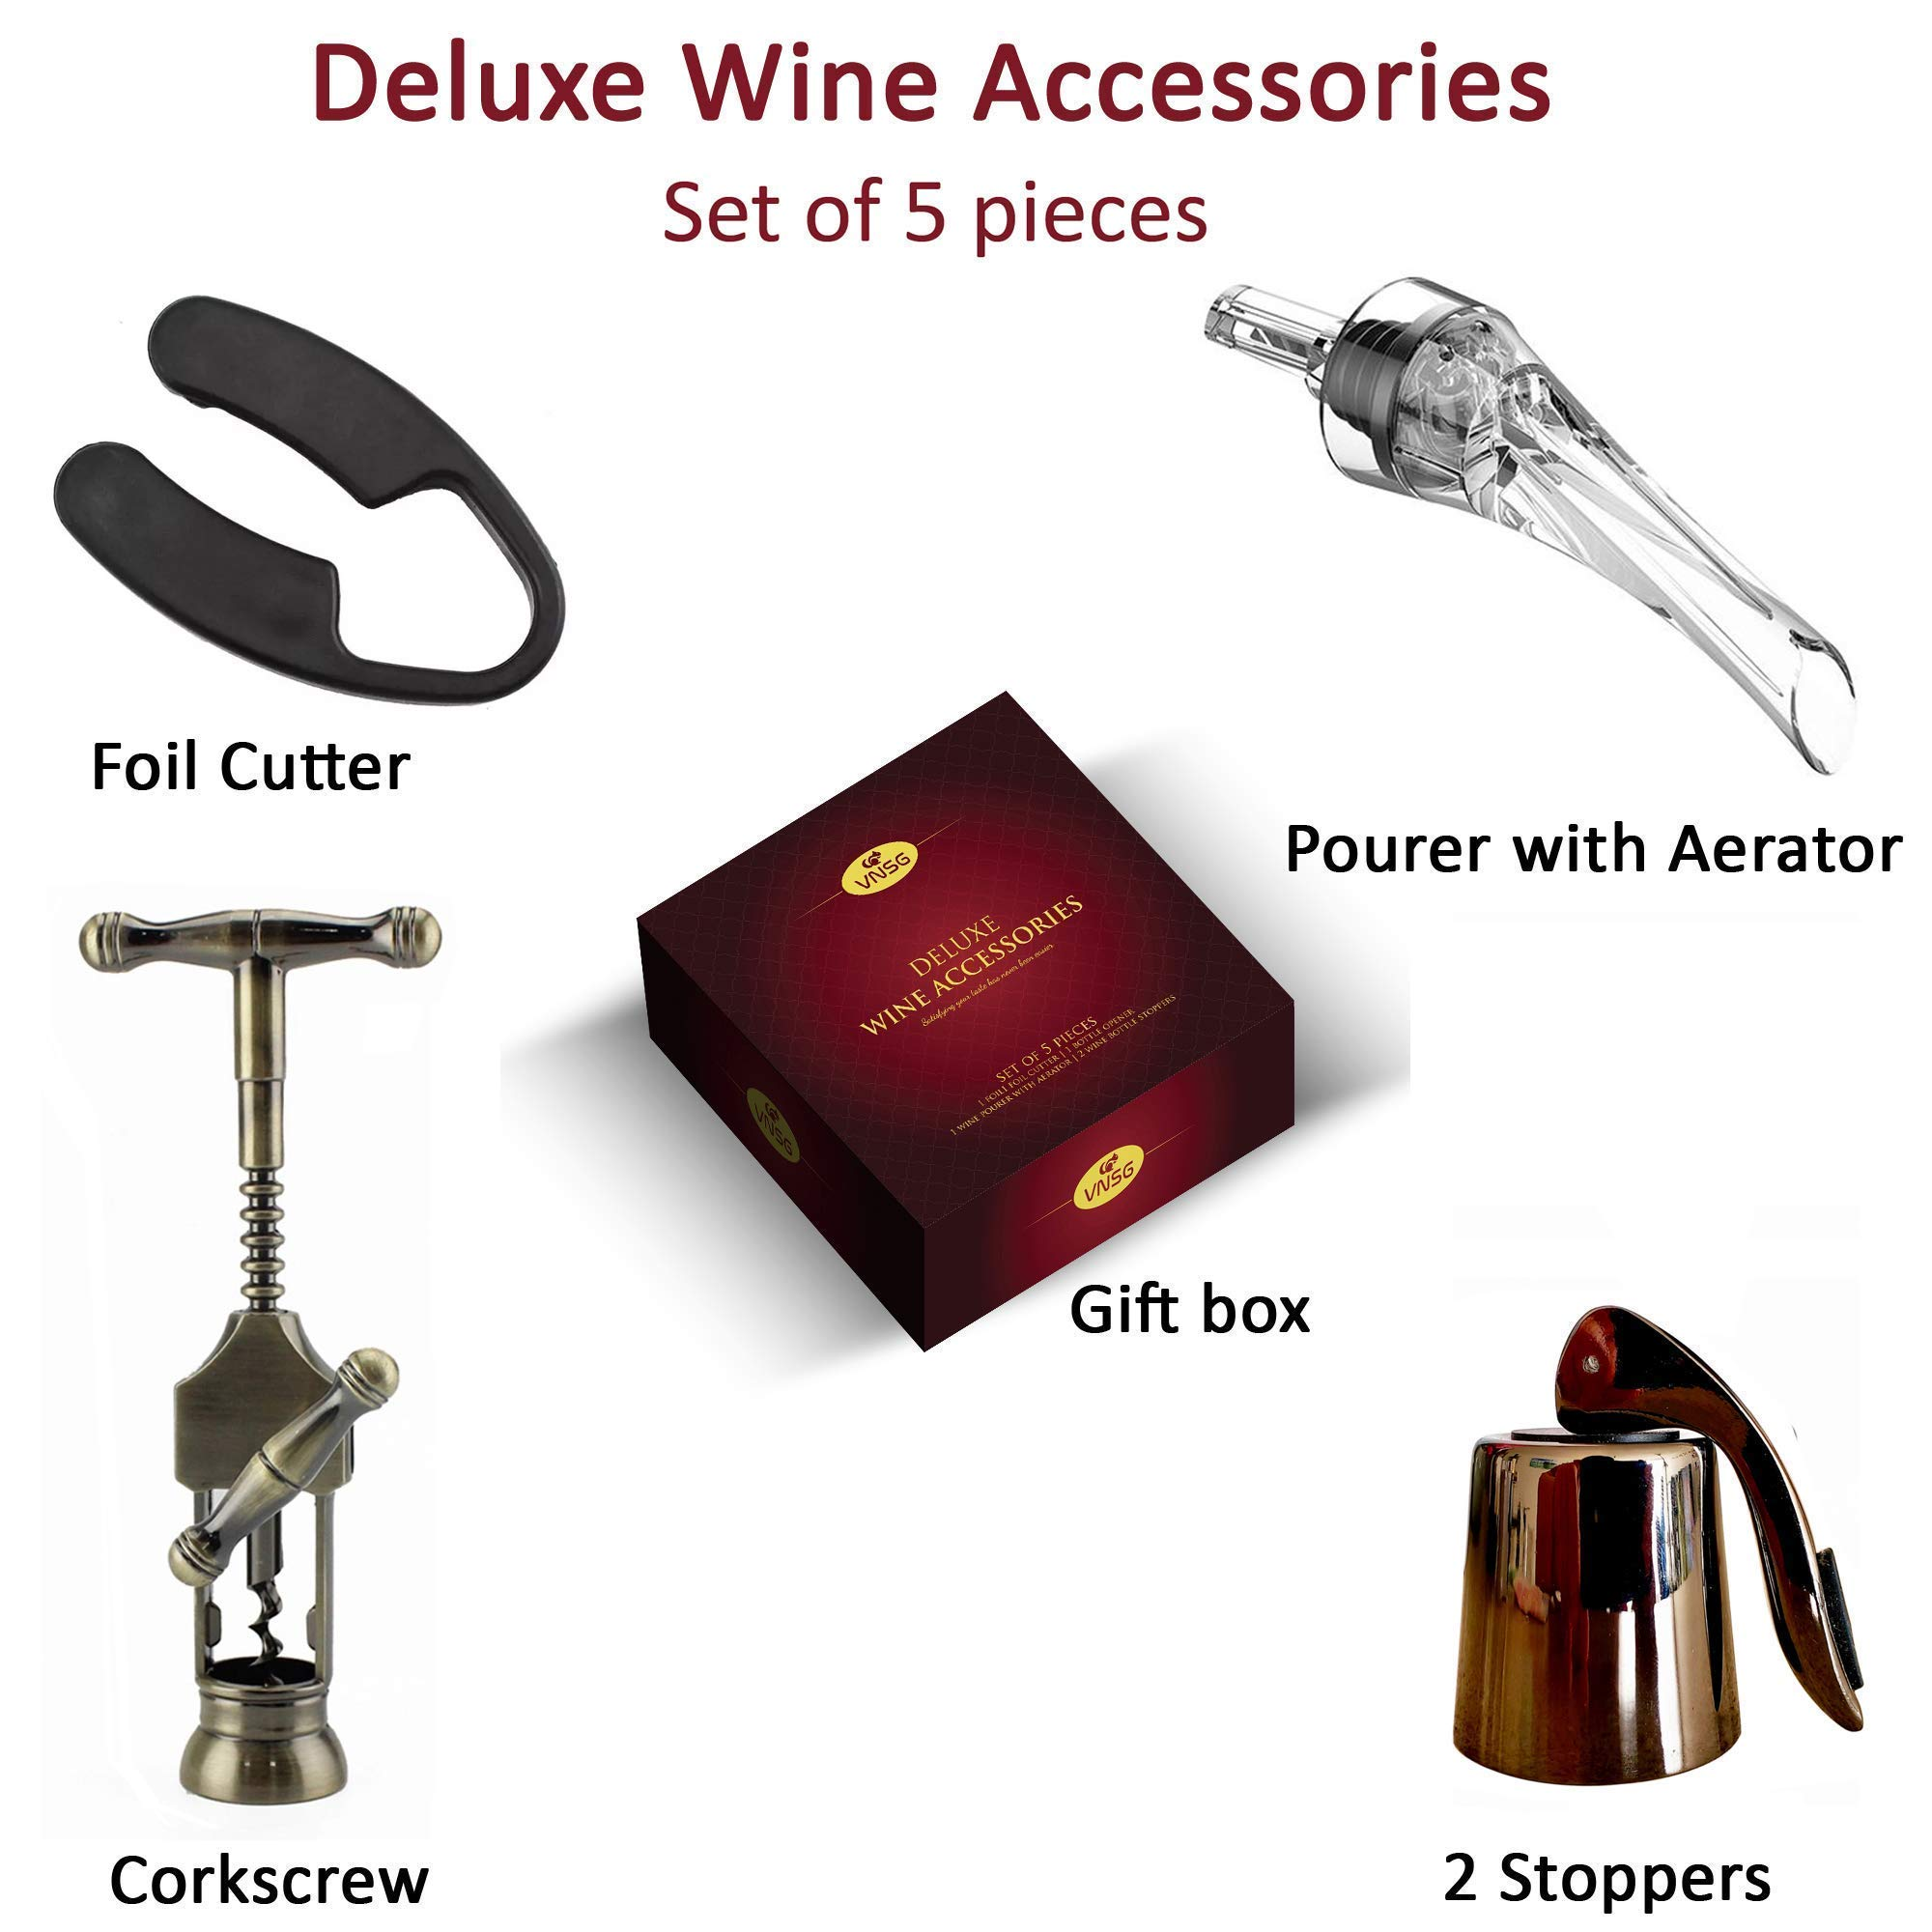 VNSG Deluxe Wine Accessories┃Wine Set of 5 Pieces (Foil Cutter, Wine Bottle Opener/Corkscrew, Wine Aerator and Pourer, Wine Bottle Stopper/Wine Preserver)┃House Warming Presents┃Wine Opener Set